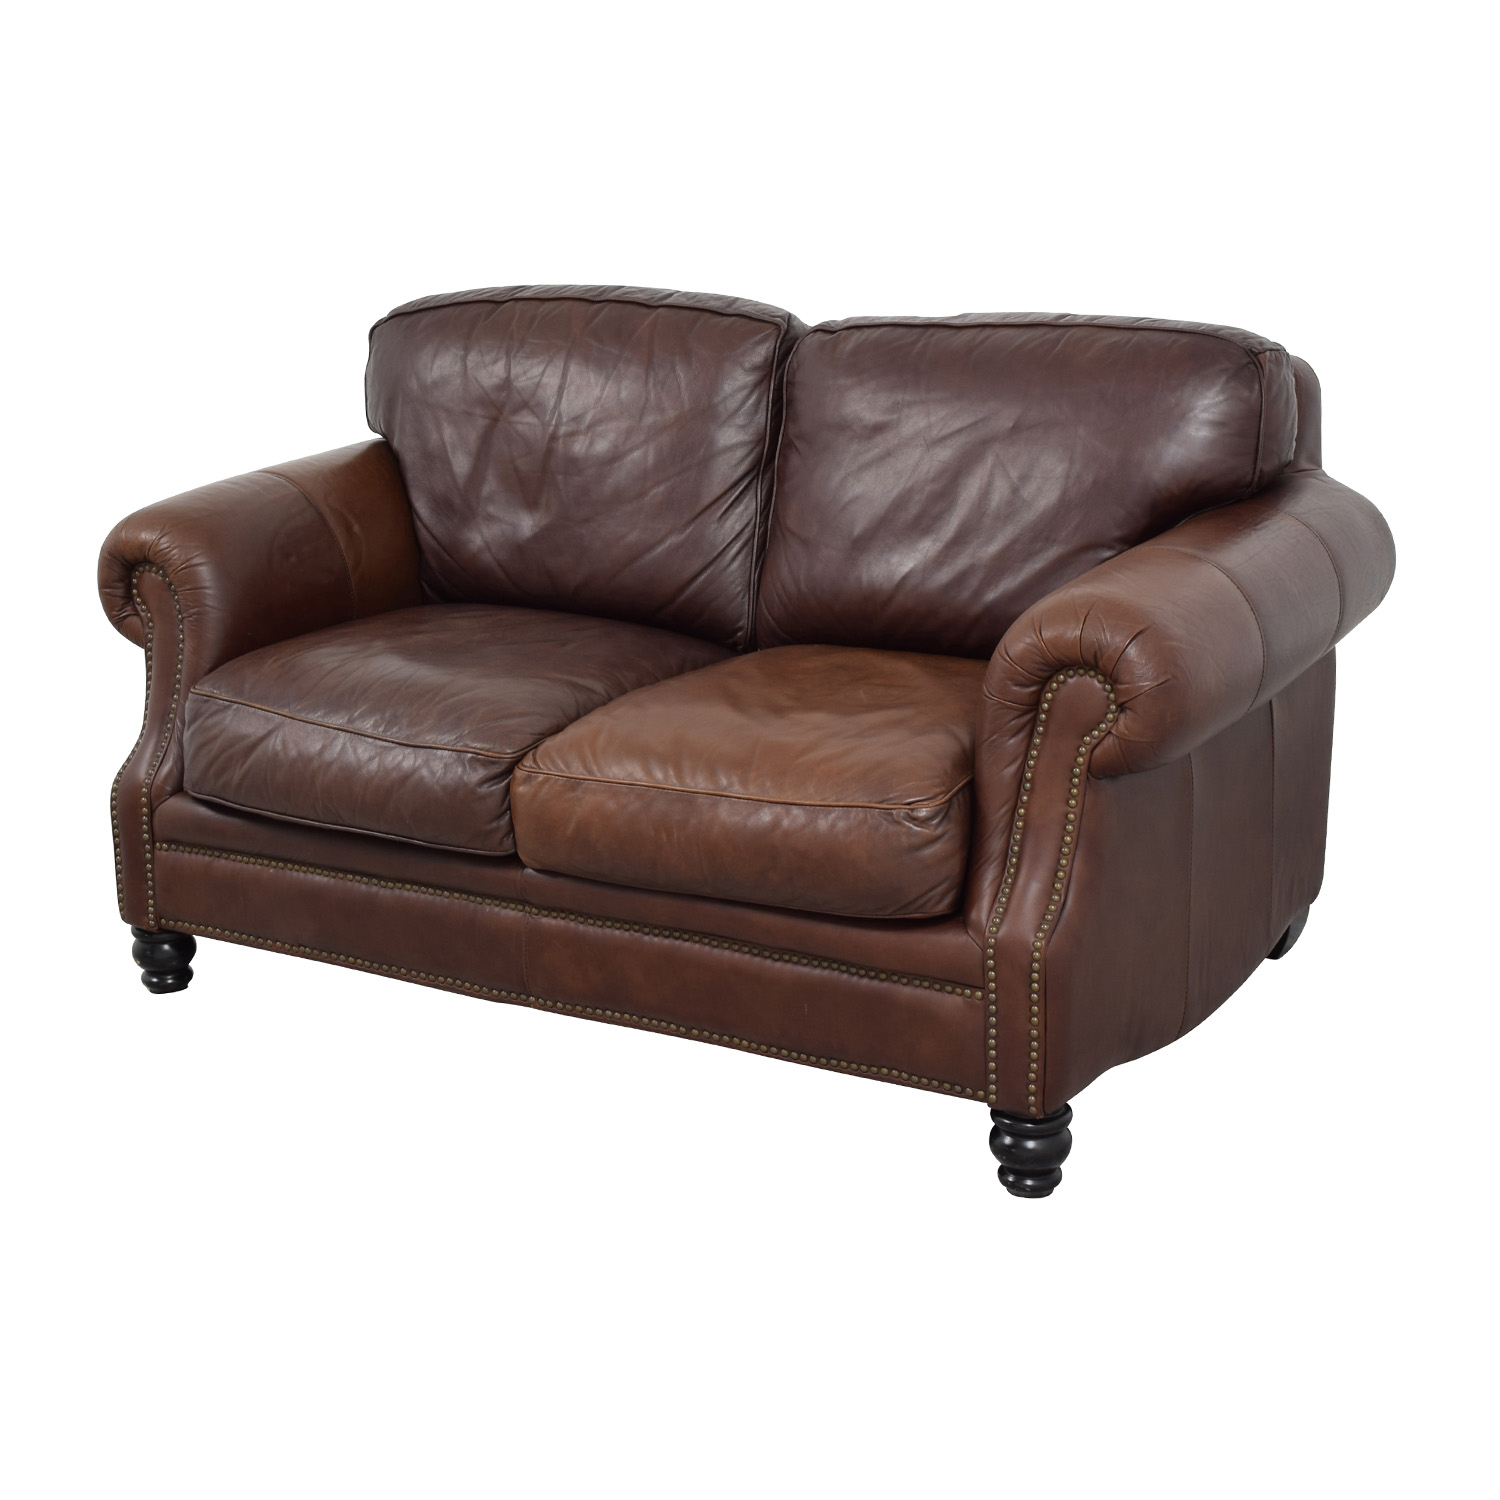 68 Off Brown Leather Studded Loveseat Sofas